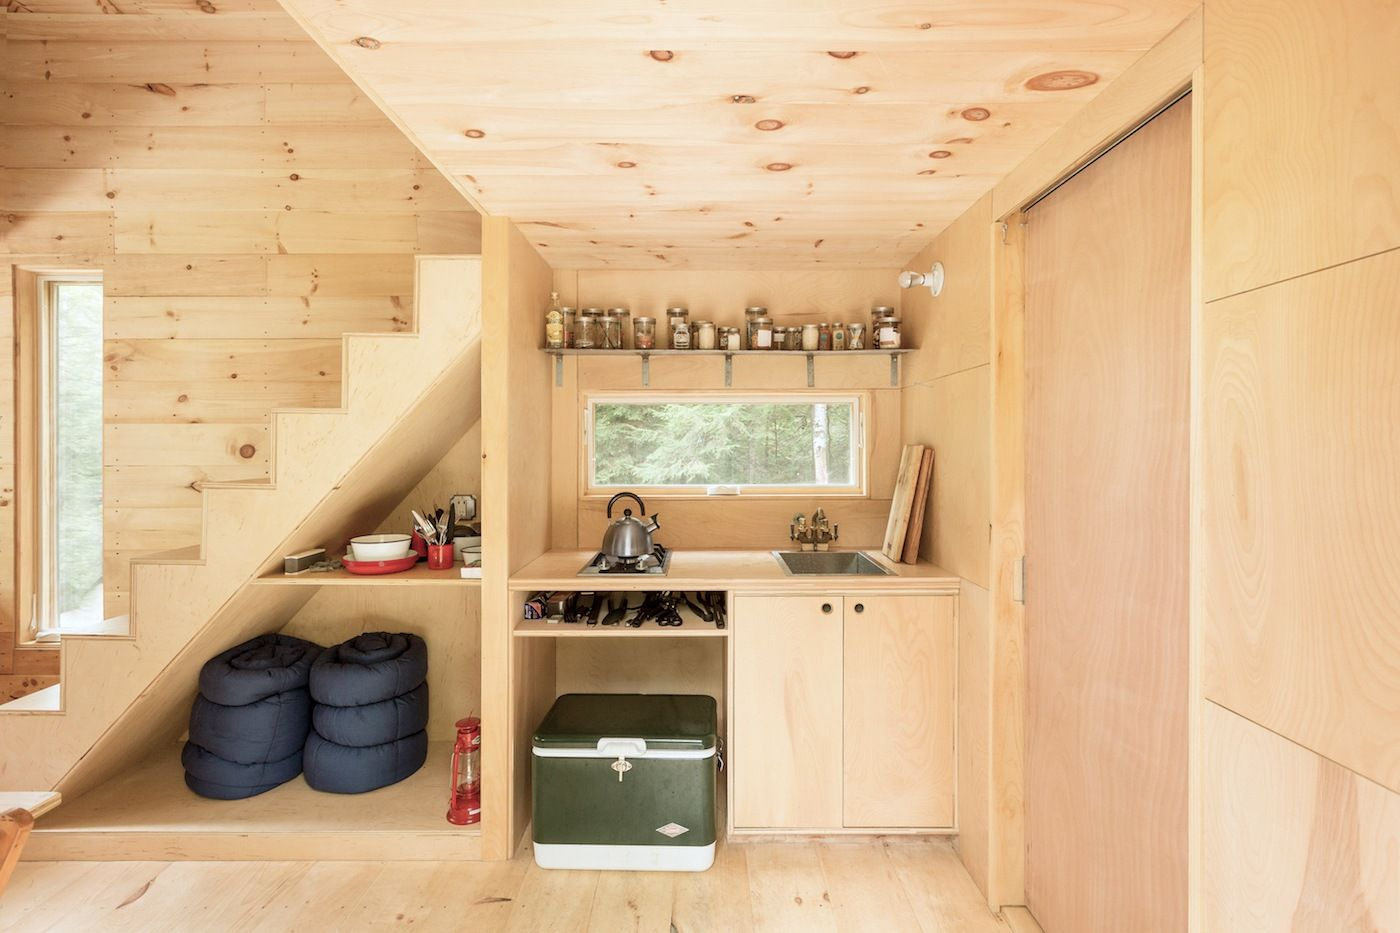 Getaway: Instant Camping for the Millennial Set - Remodelista